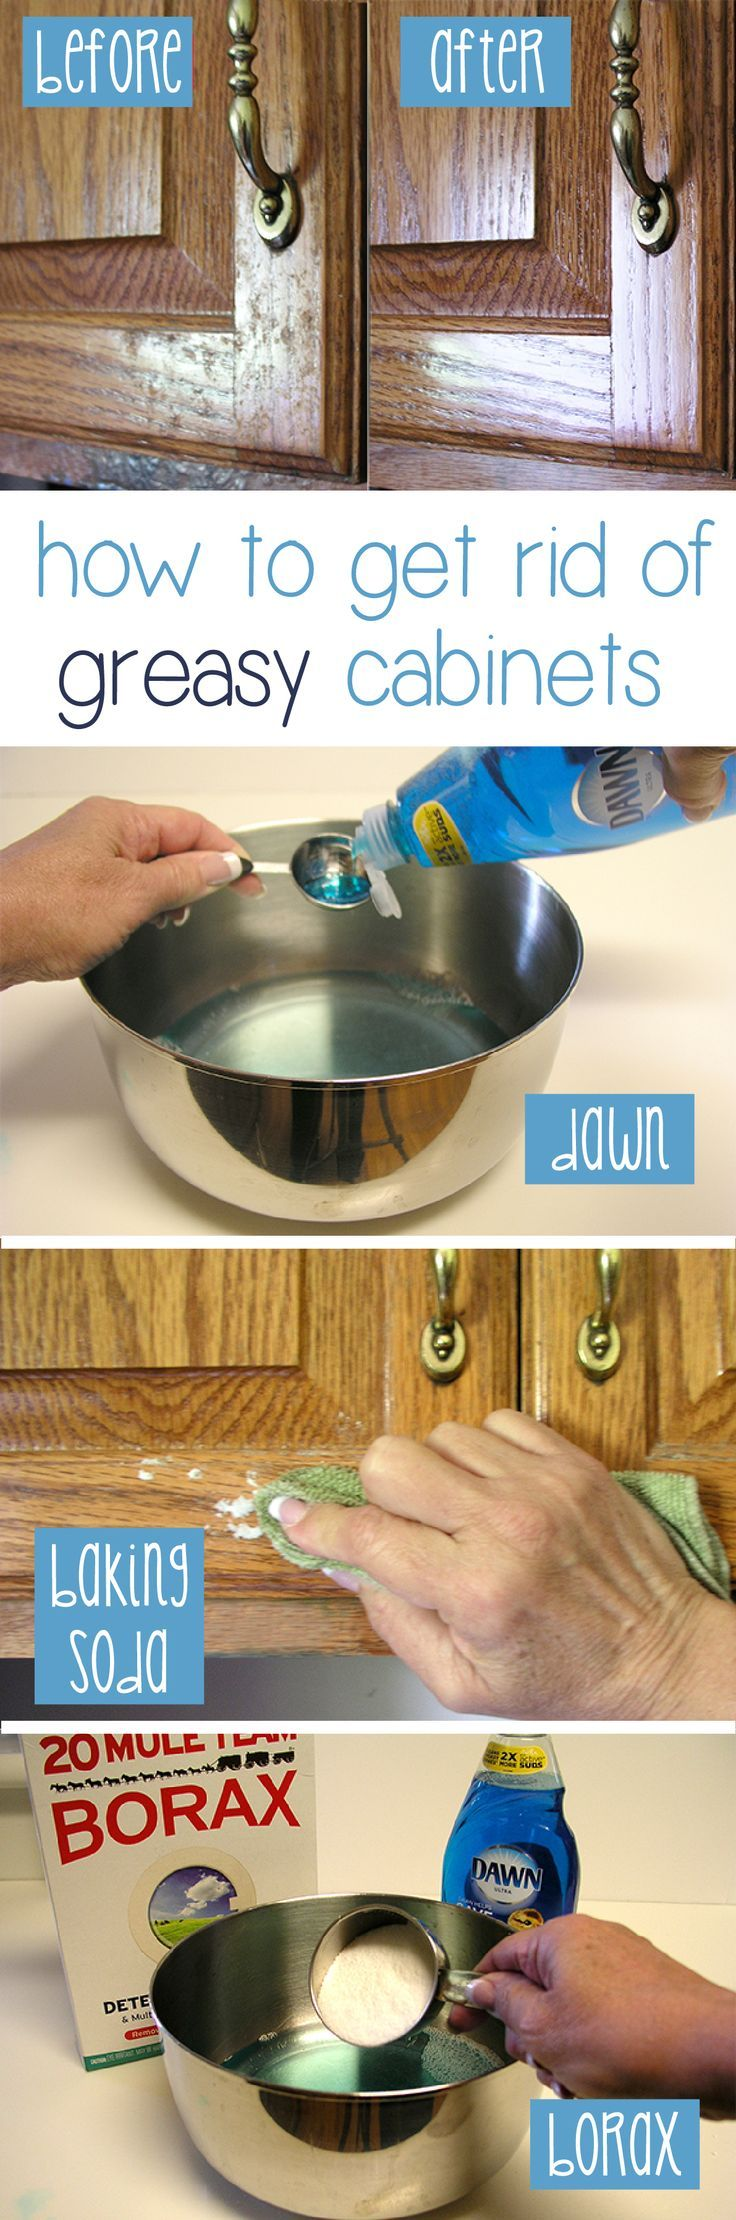 Best Kitchen Gallery: How To Clean Grease From Kitchen Cabi Doors Kitchens Kitchen of How To Shine Kitchen Cabinets on cal-ite.com